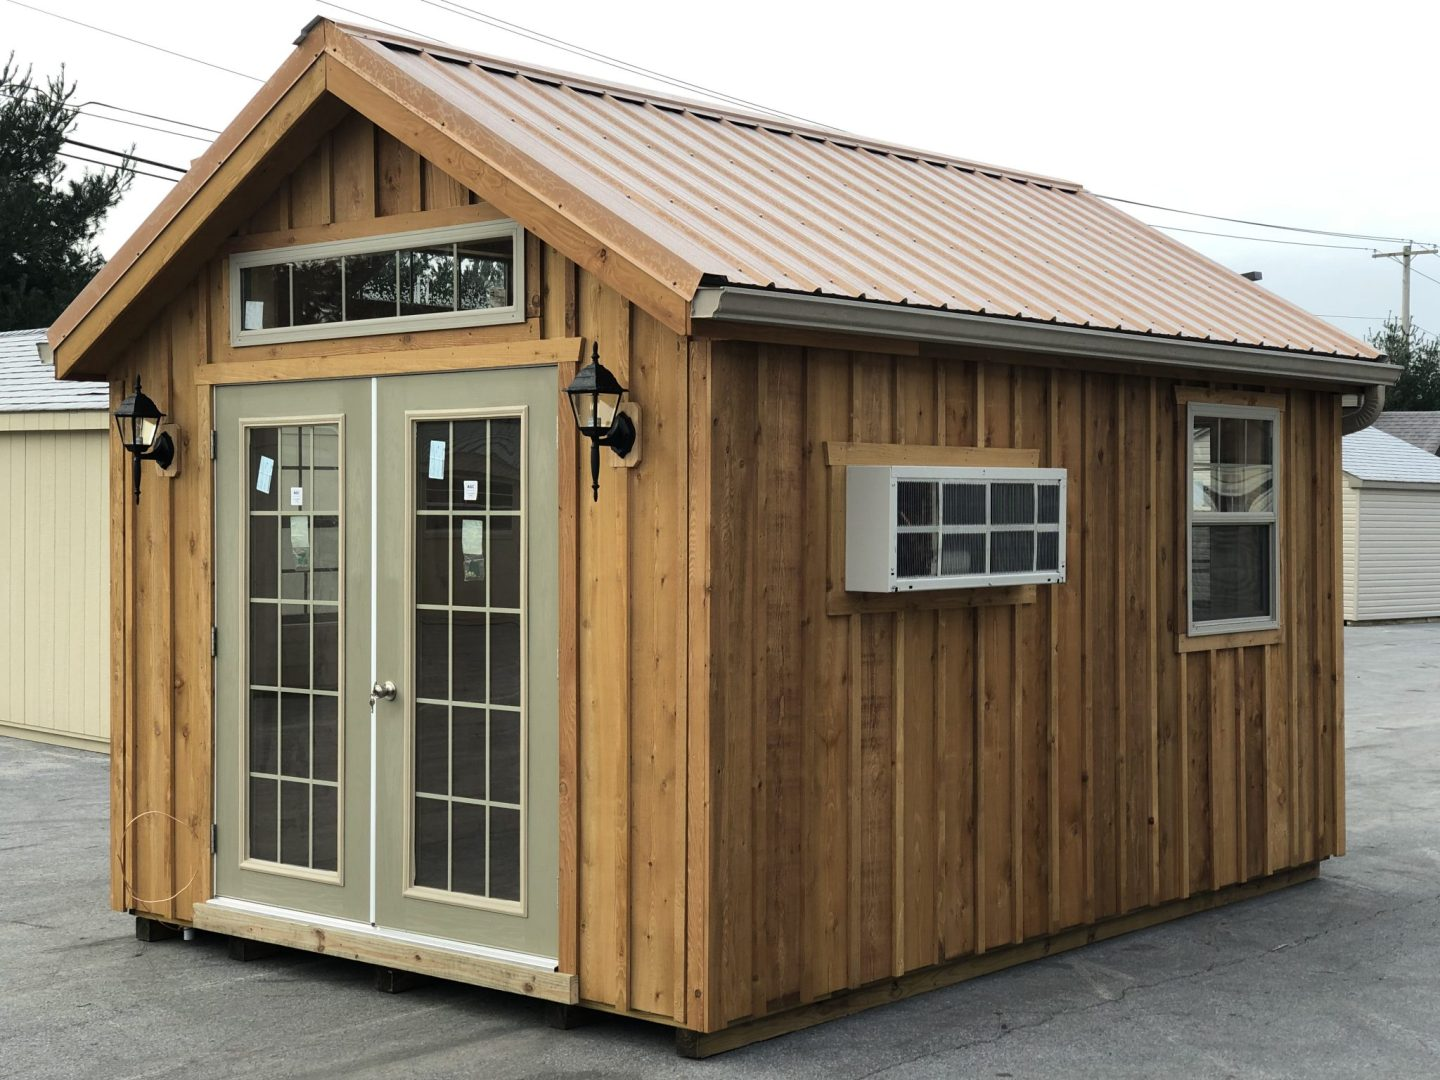 She Shed Kits She Sheds For Sale Stoltzfus Structures